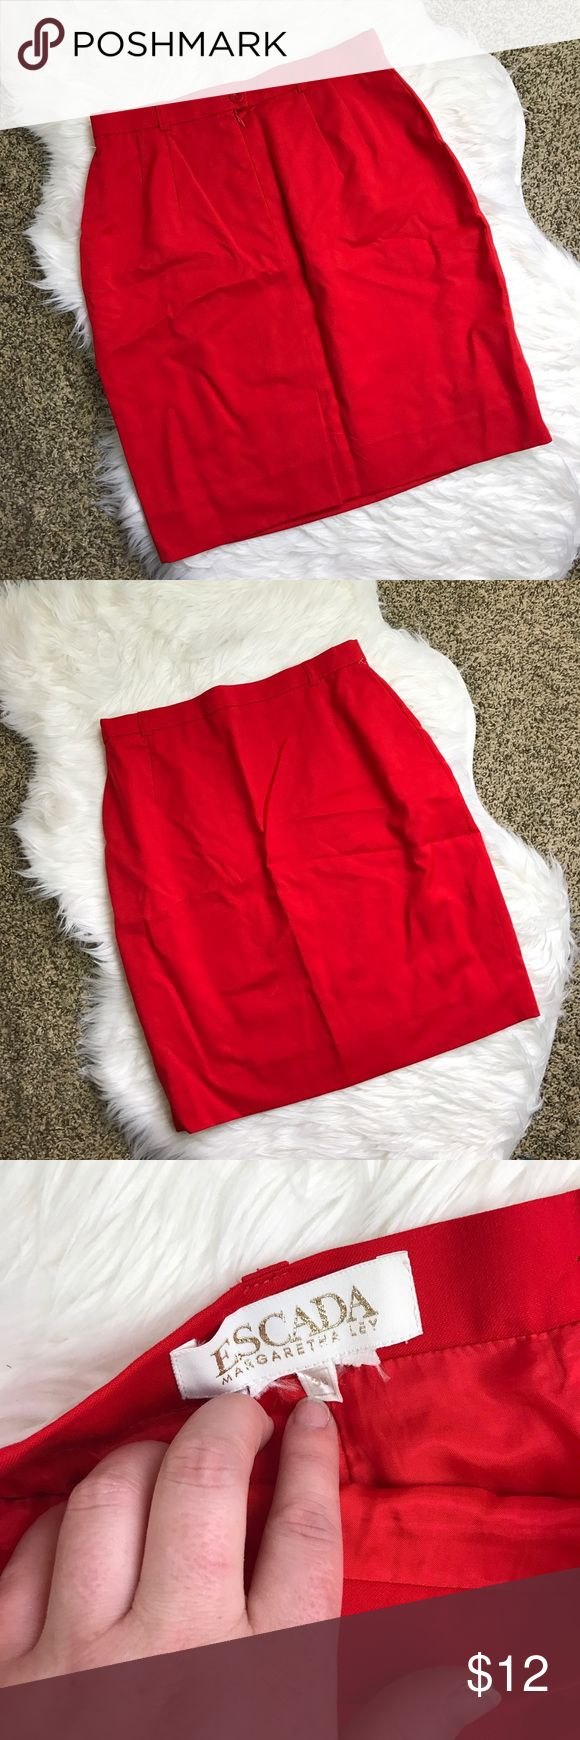 [Escada] Red Pencil Skirt Cute red pencil skirt with button and zip front. There is little to no stretch to this skirt. Size 38, gentle wear. Tag has some tearing/fraying. Escada Skirts Pencil